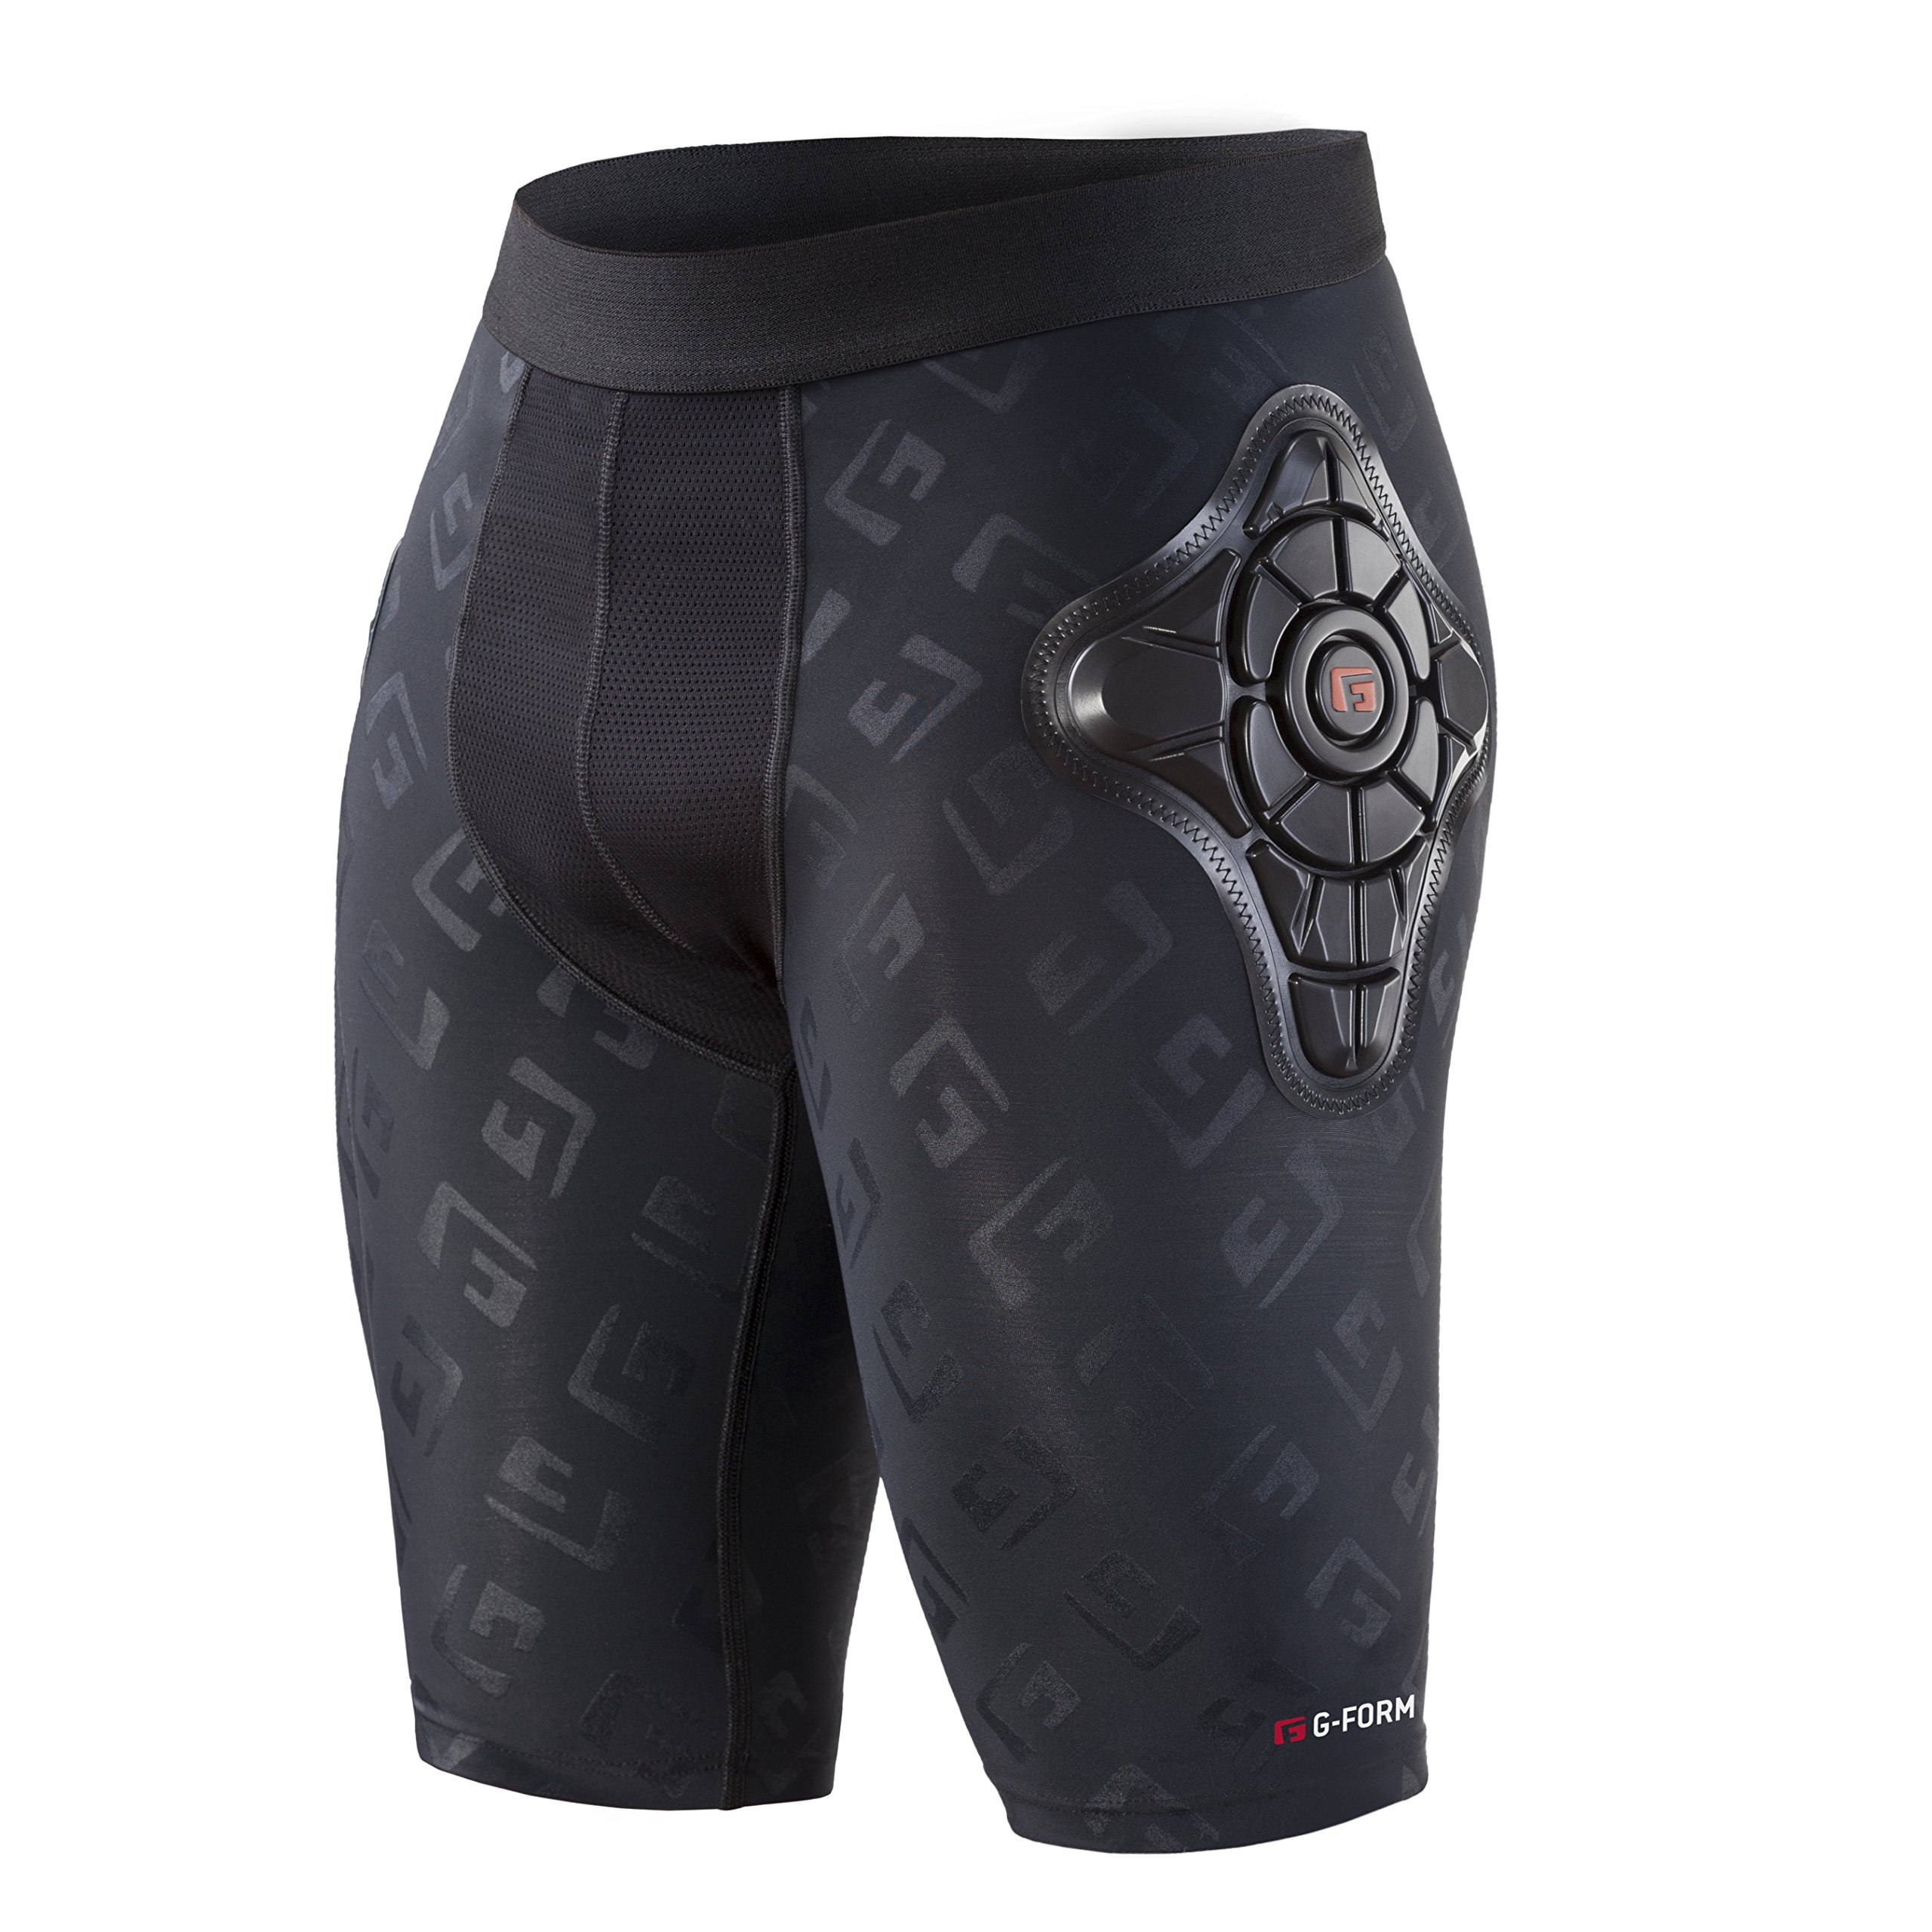 G-Form Pro-X Padded Compression Shorts, Black Logo, Adult Small